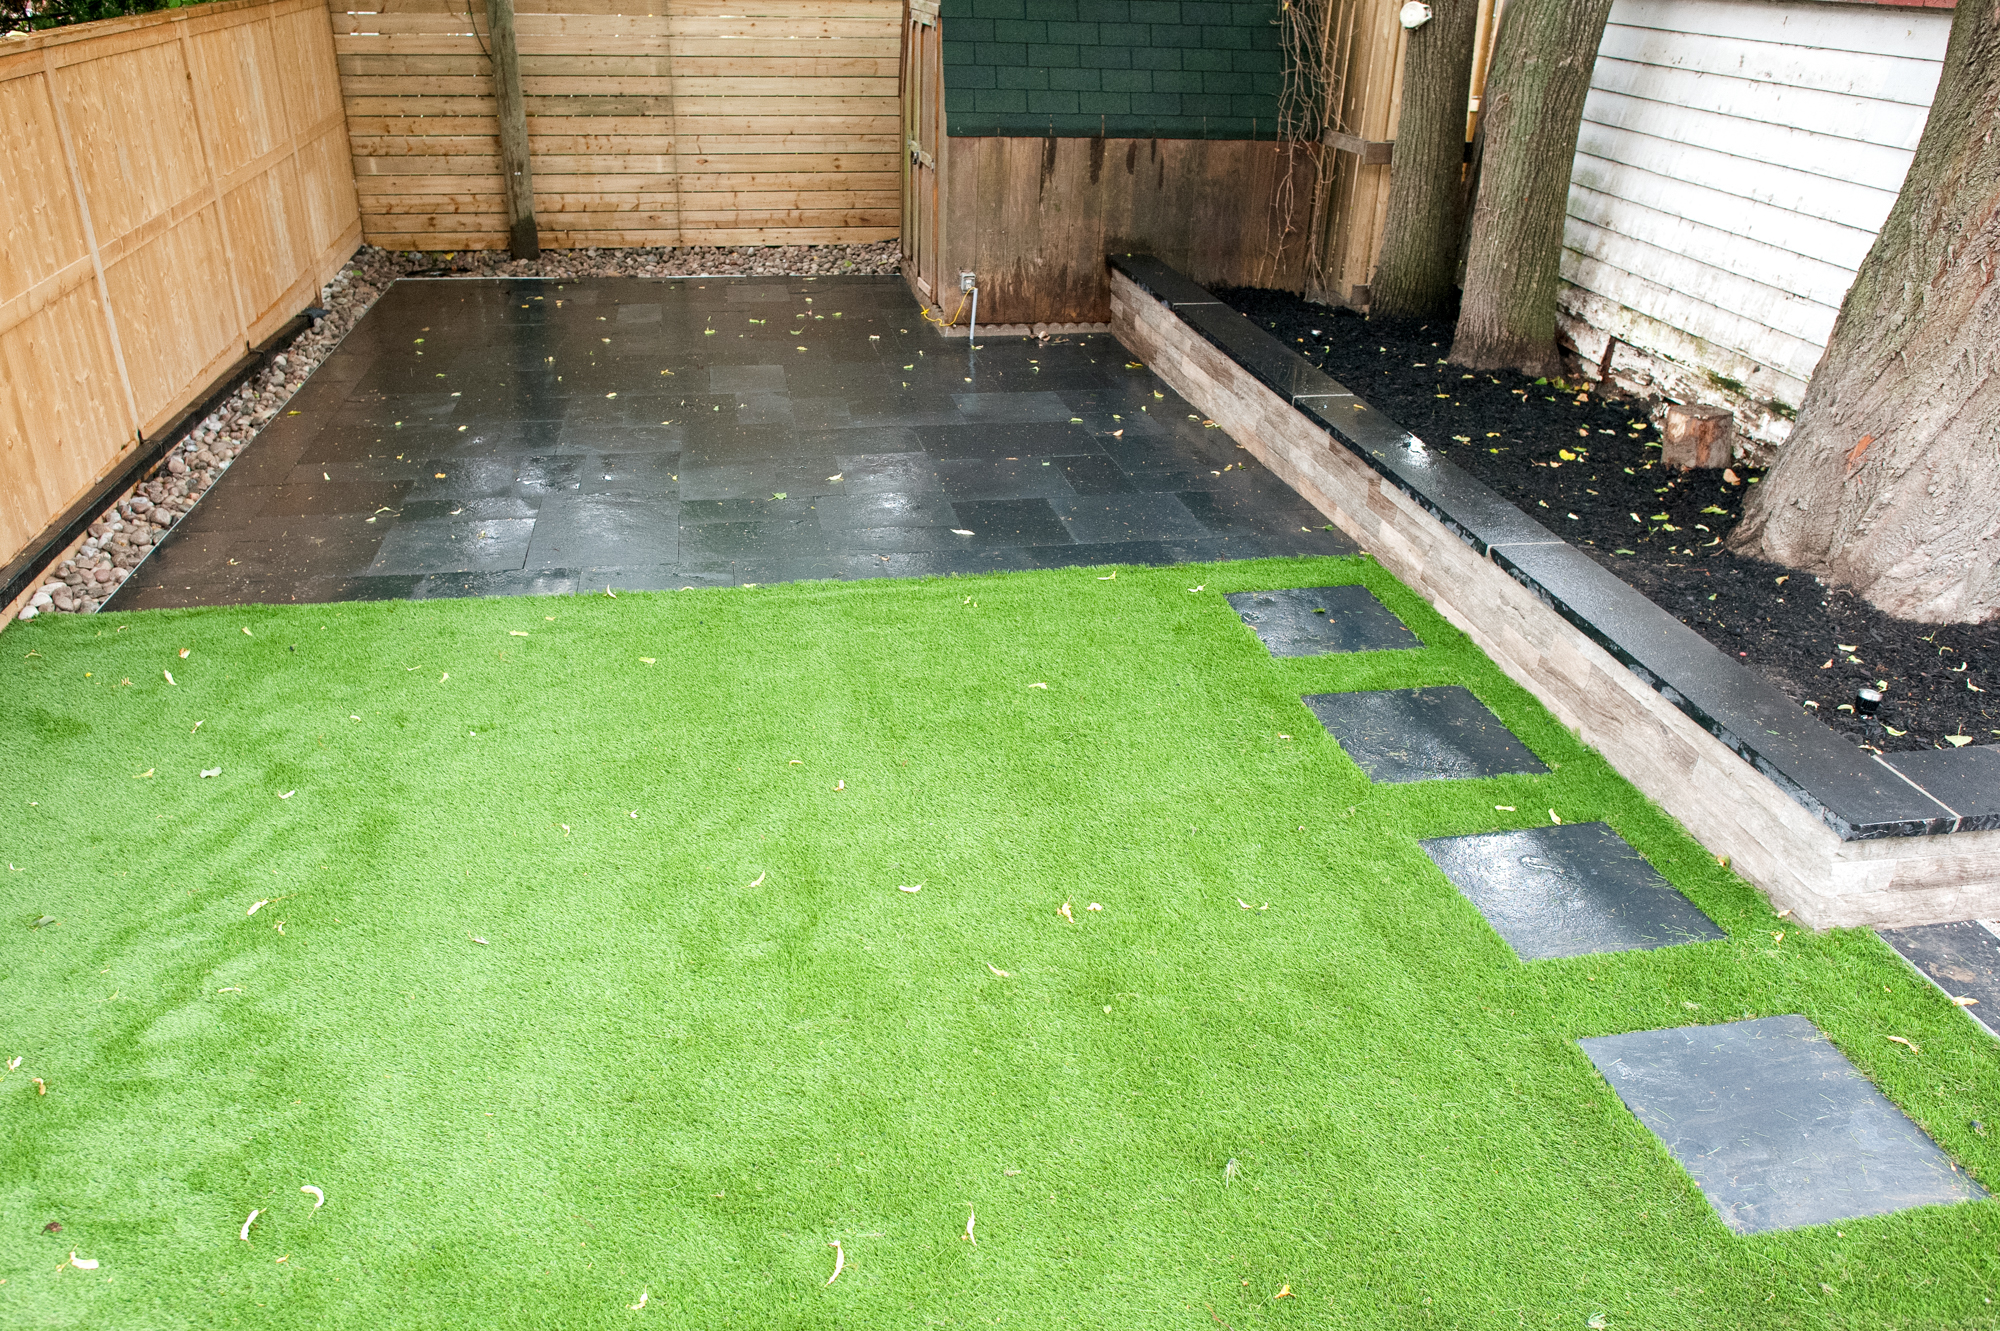 Copy of Completed Project - Turf Overview